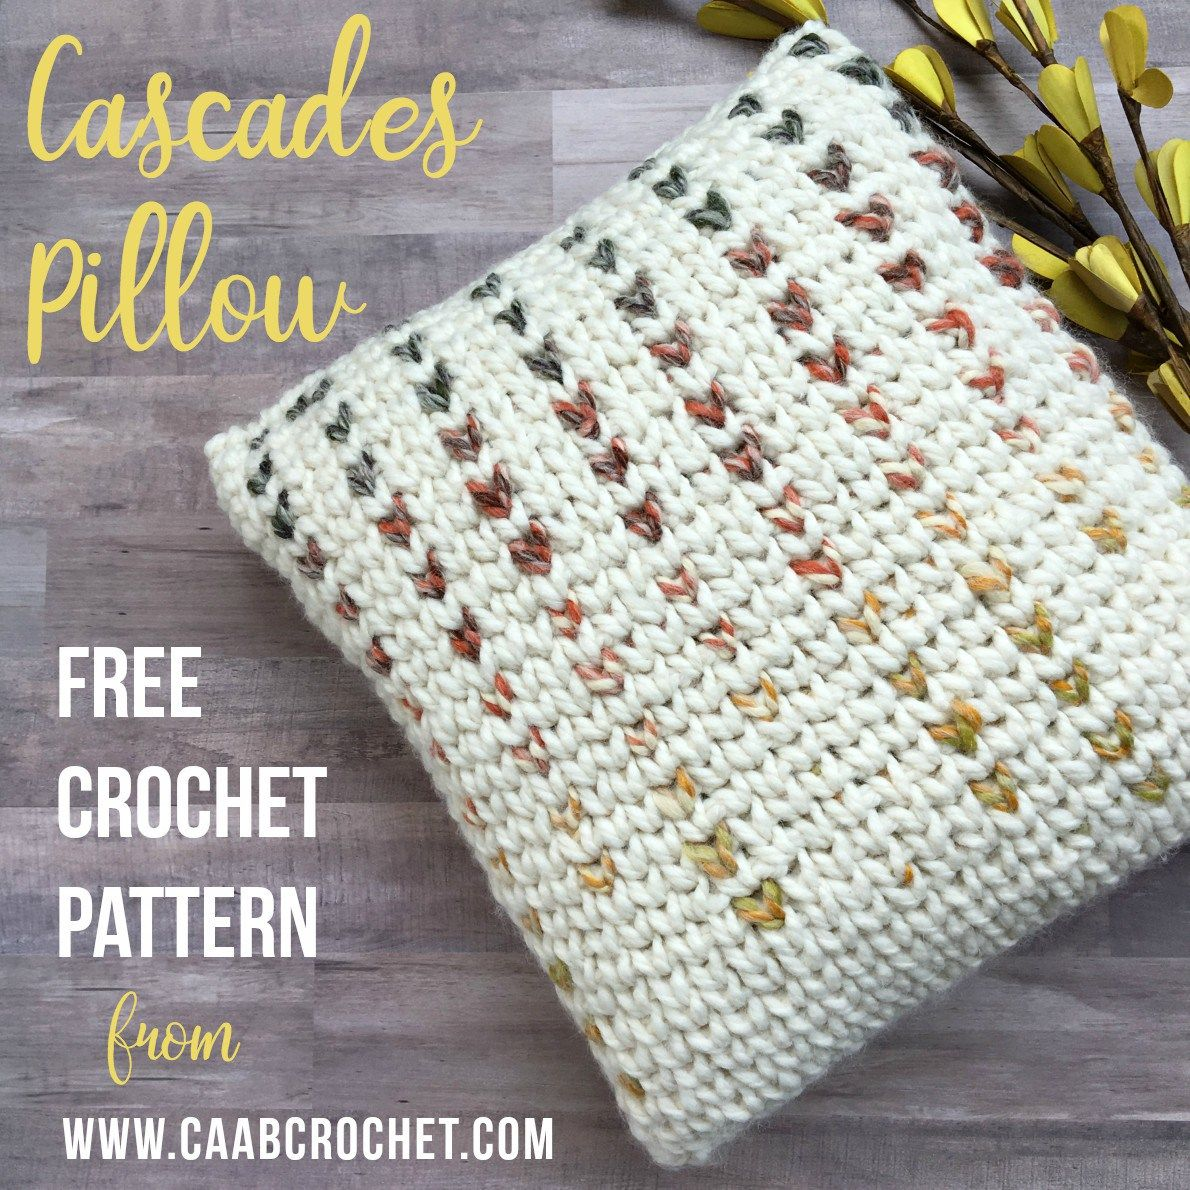 Cascades Pillow | Crochet | Pinterest | Croché, Ganchillo and Bordado